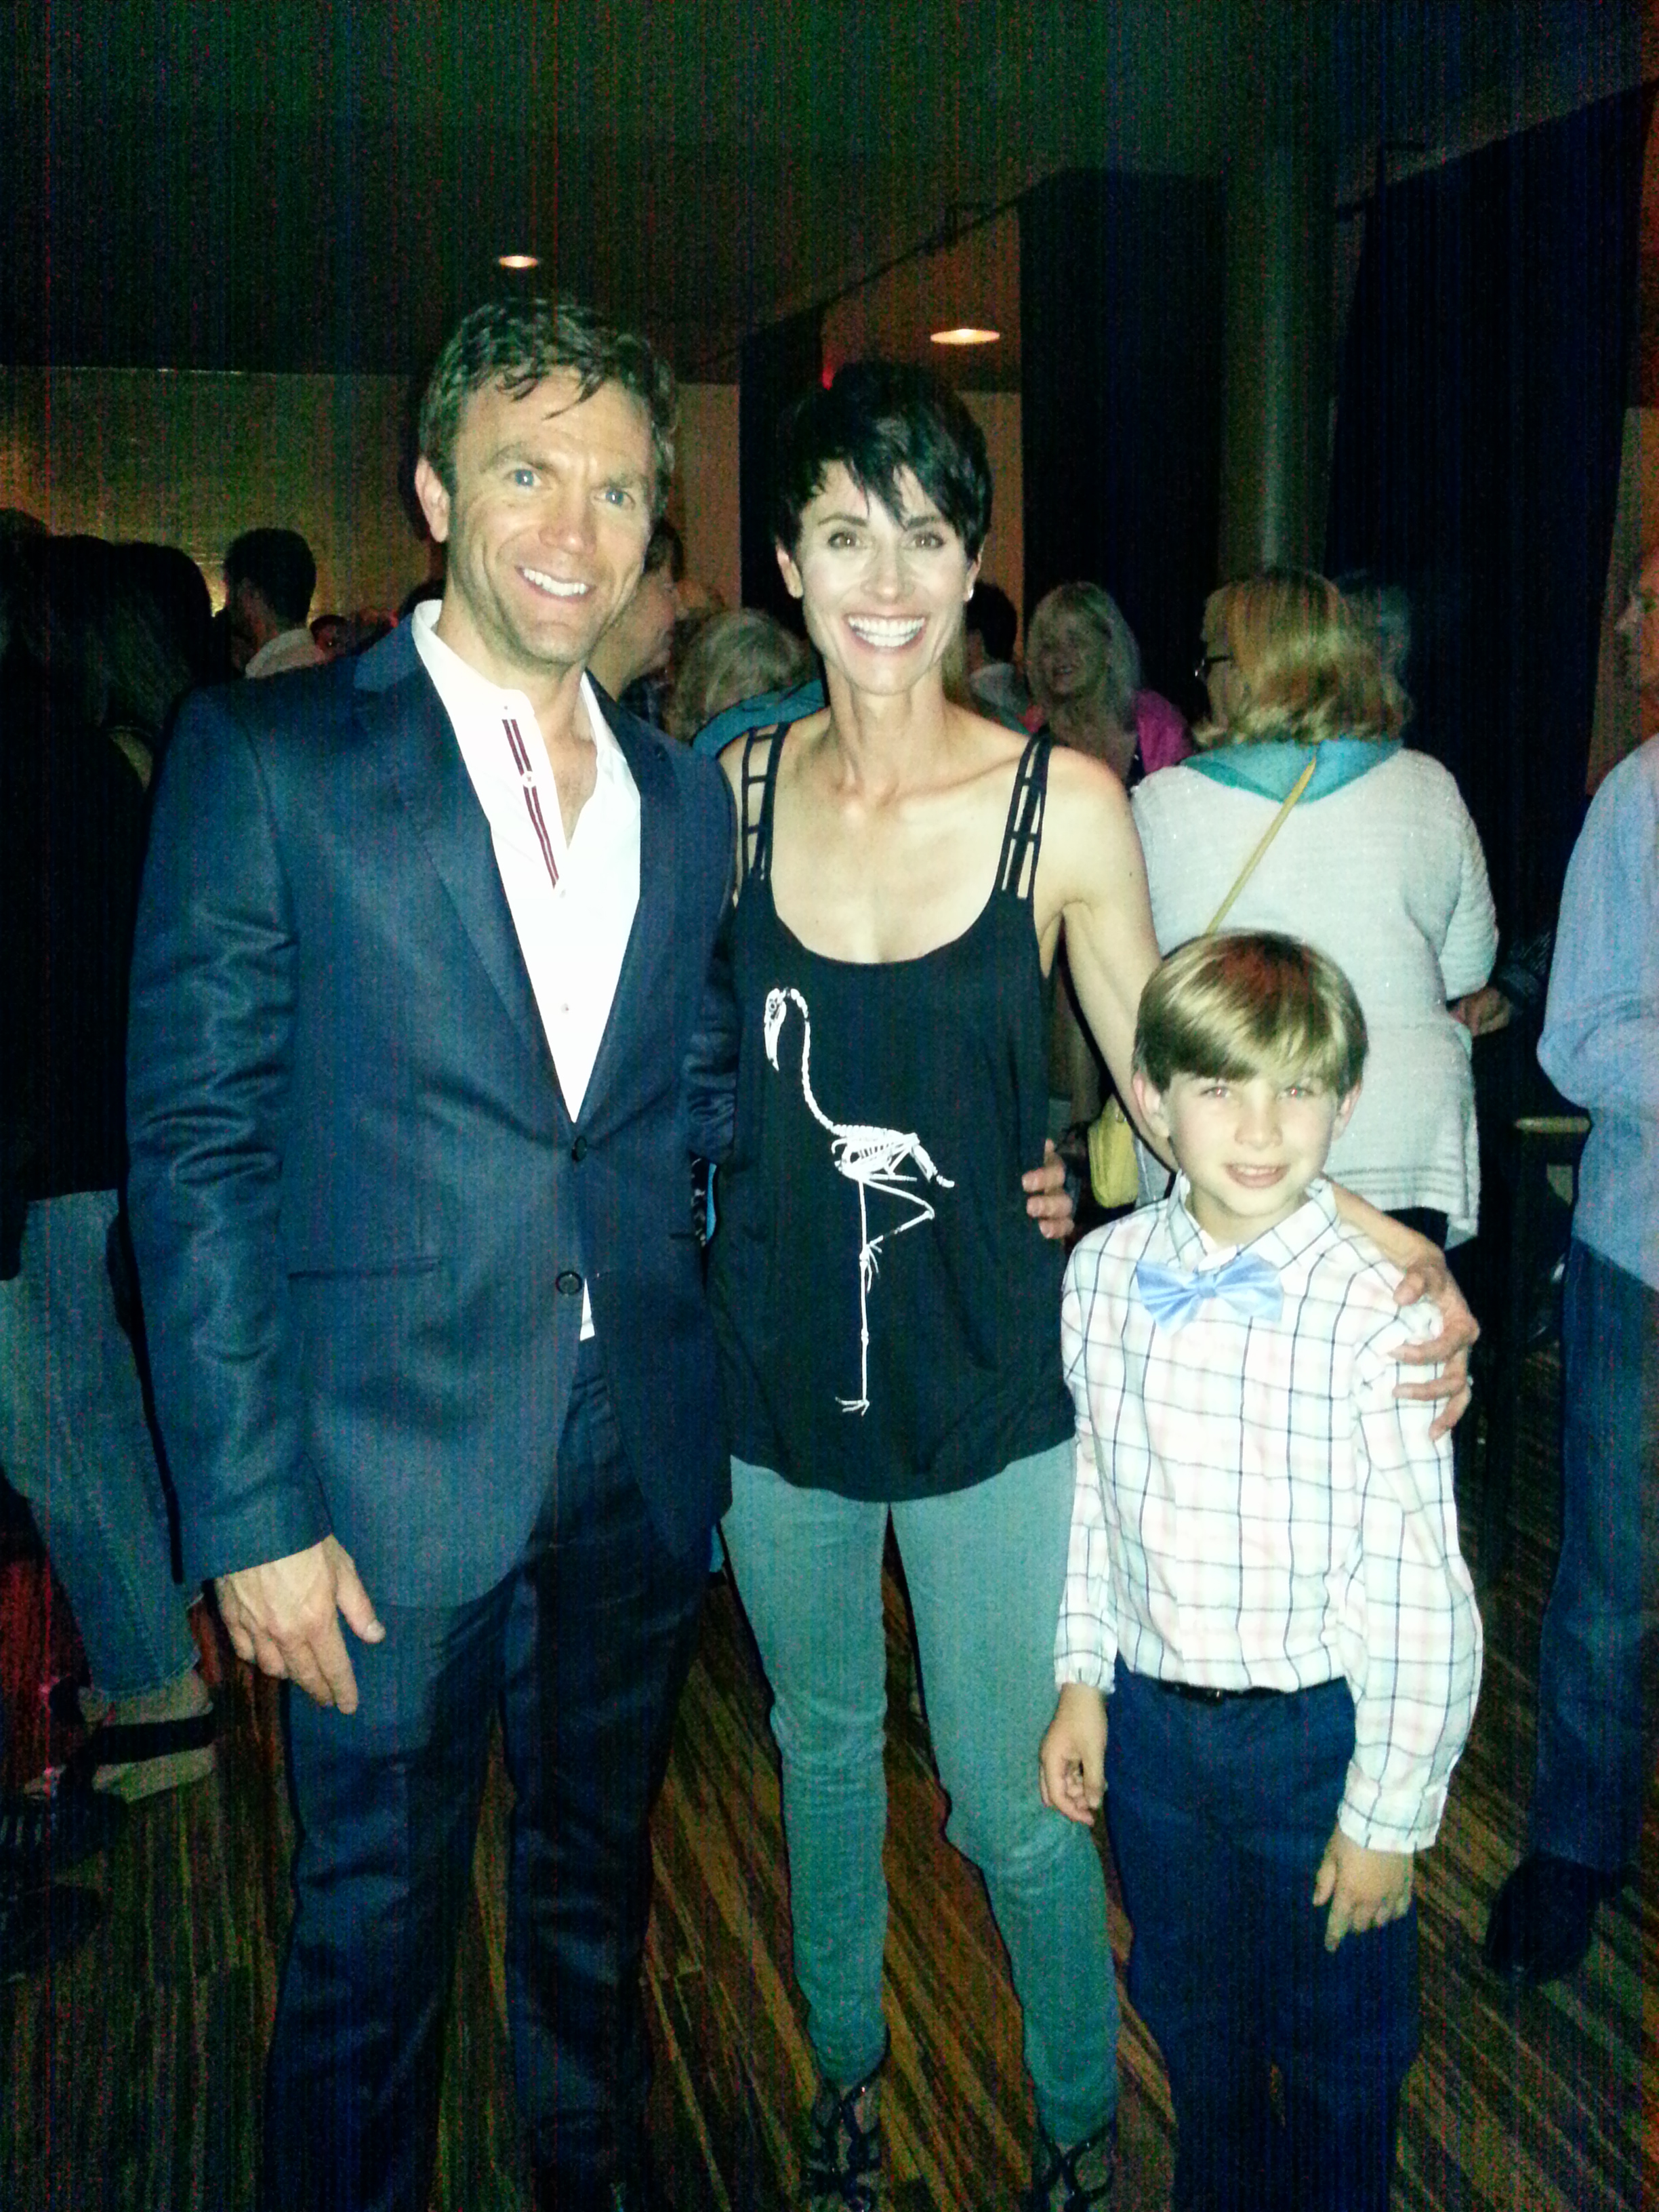 Noah with 'Annie' Beth Malone (Broadway: 'Ring of Fire', Off Broadway: 'Fun Home', 'The Marvelous Wonderettes') and Director John Todd.